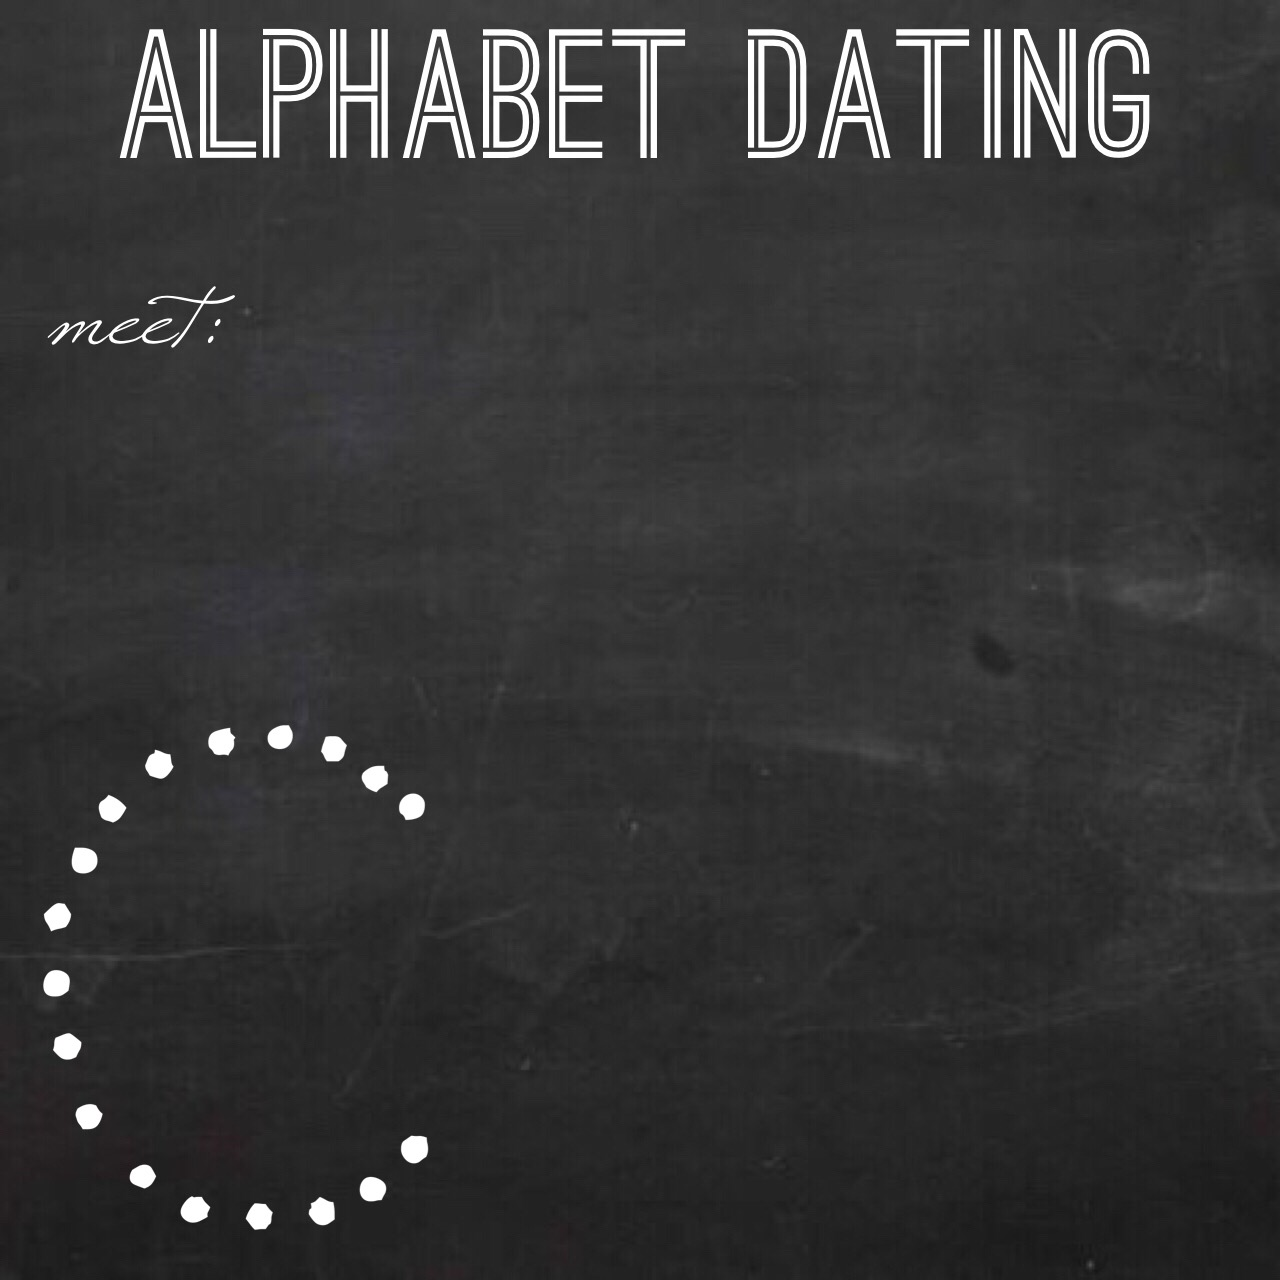 dating alphabet